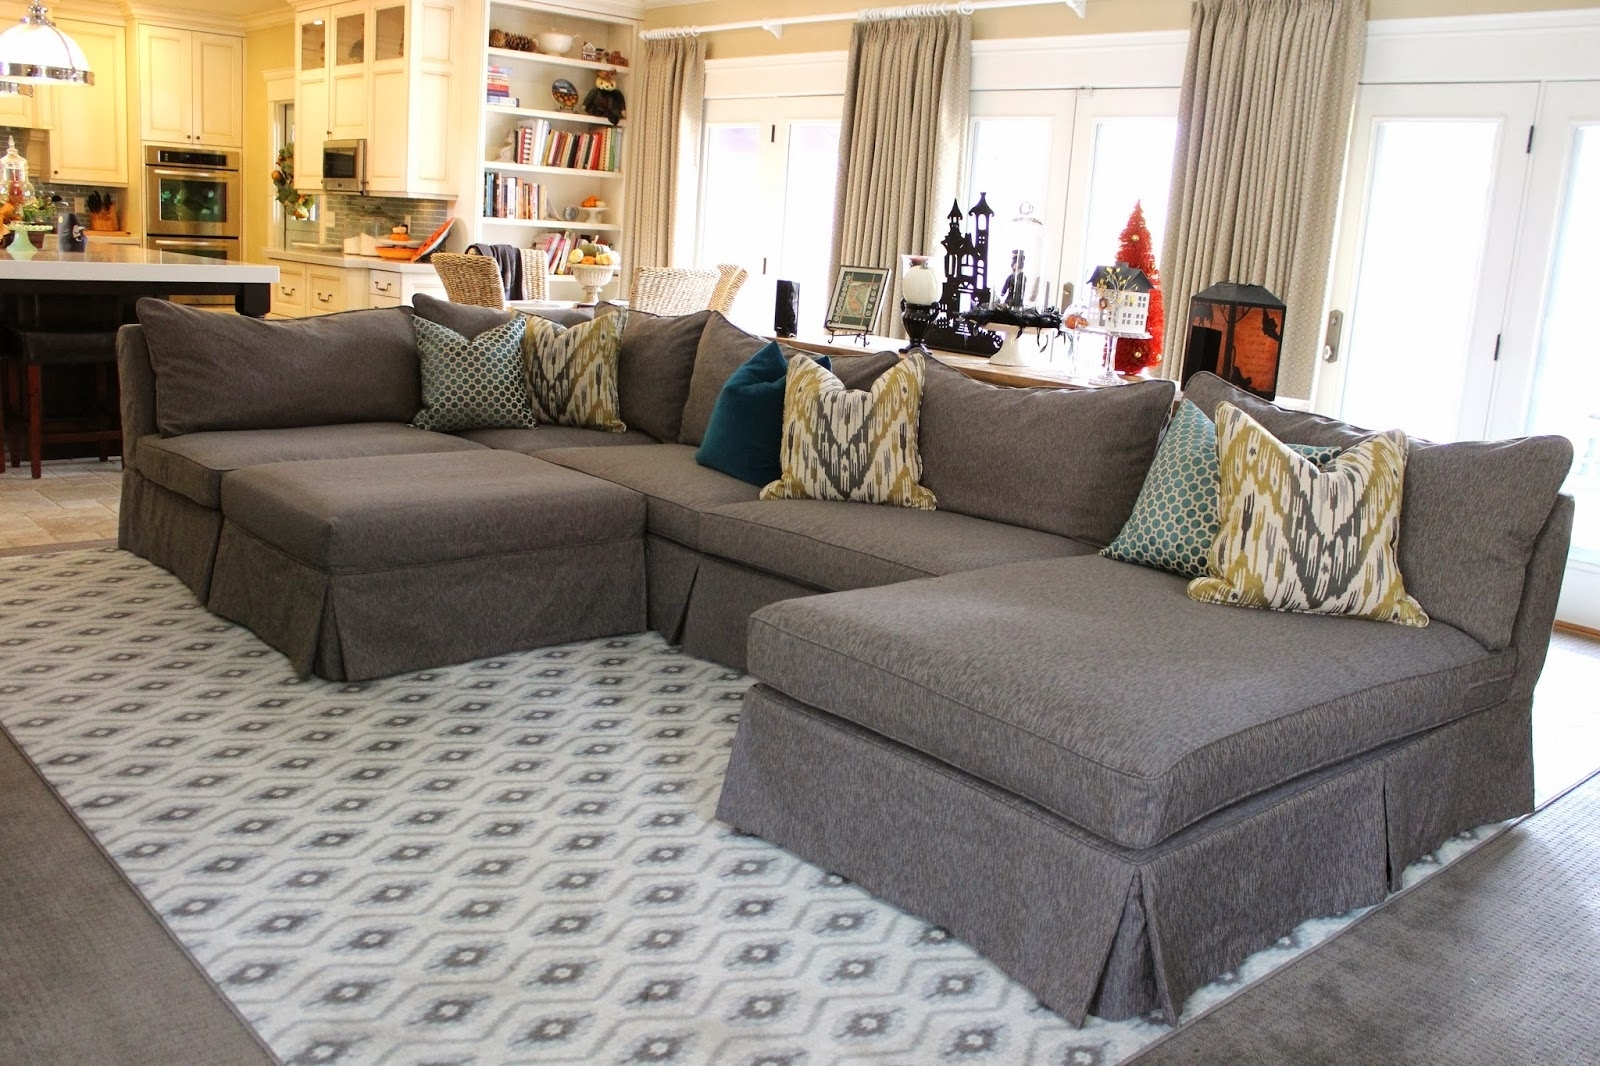 Widely Used Furniture : Sectional Sofa Joining Hardware Corner Couch House And Pertaining To Gta Sectional Sofas (View 19 of 20)